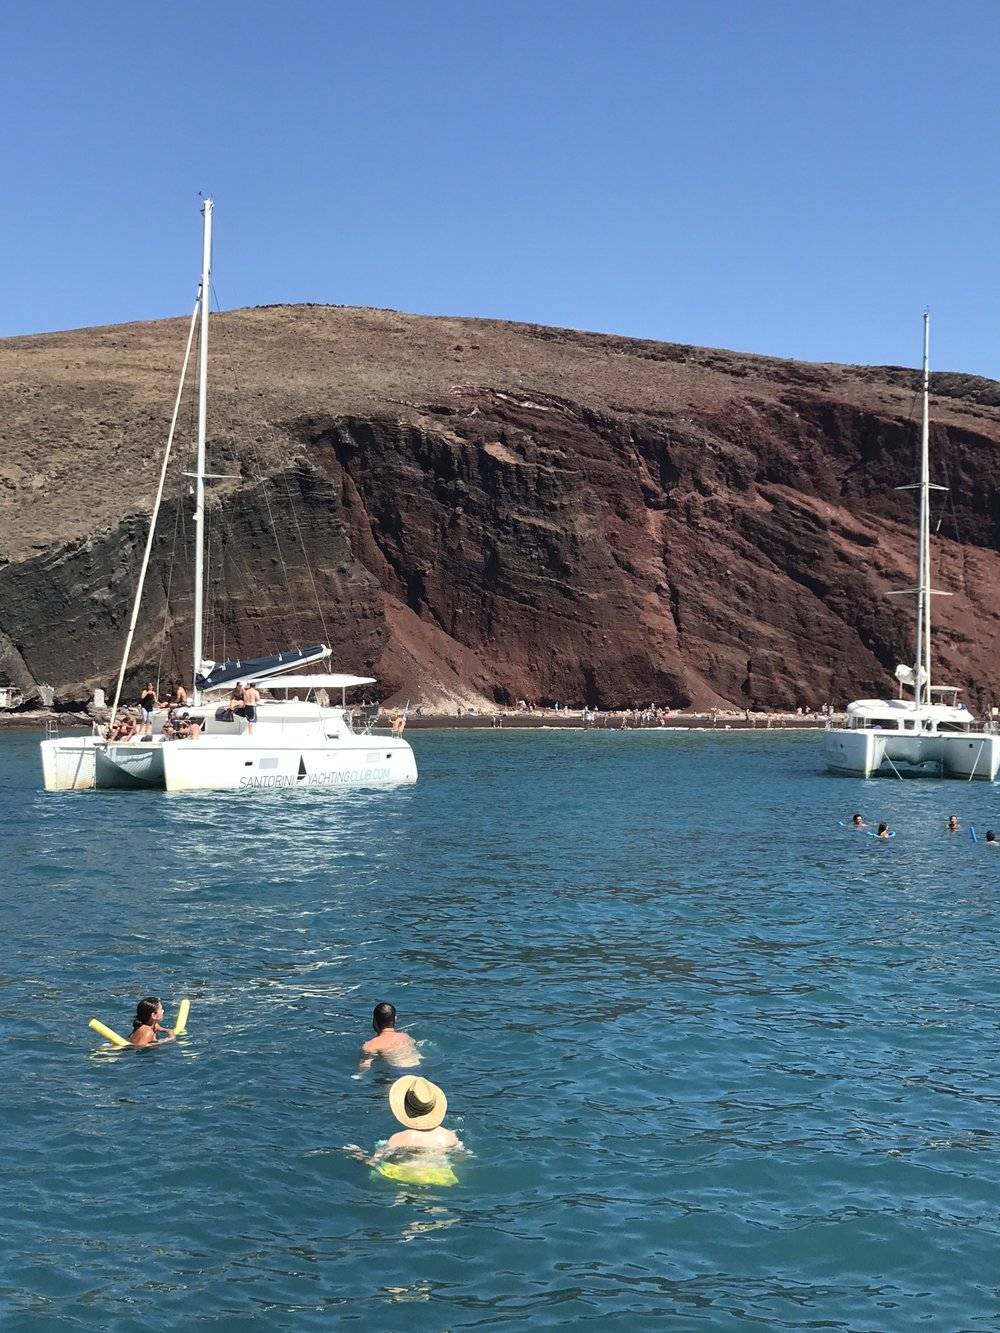 We spent a lovely afternoon on a catamaran cruise while on Santorini.